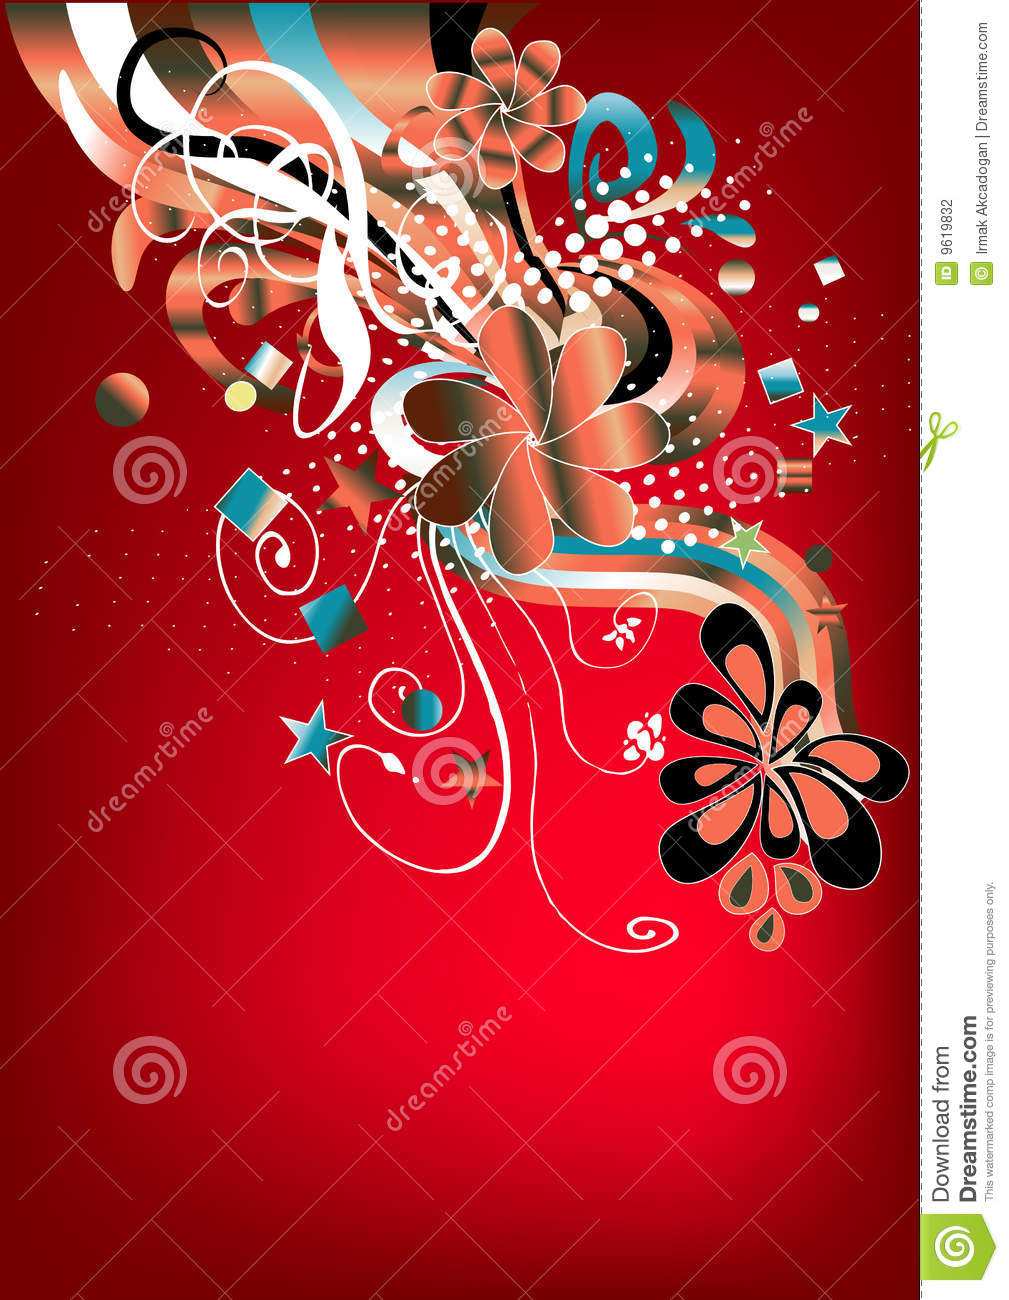 Funky Red Retro Graphic Stock Photography - Image: 9619832